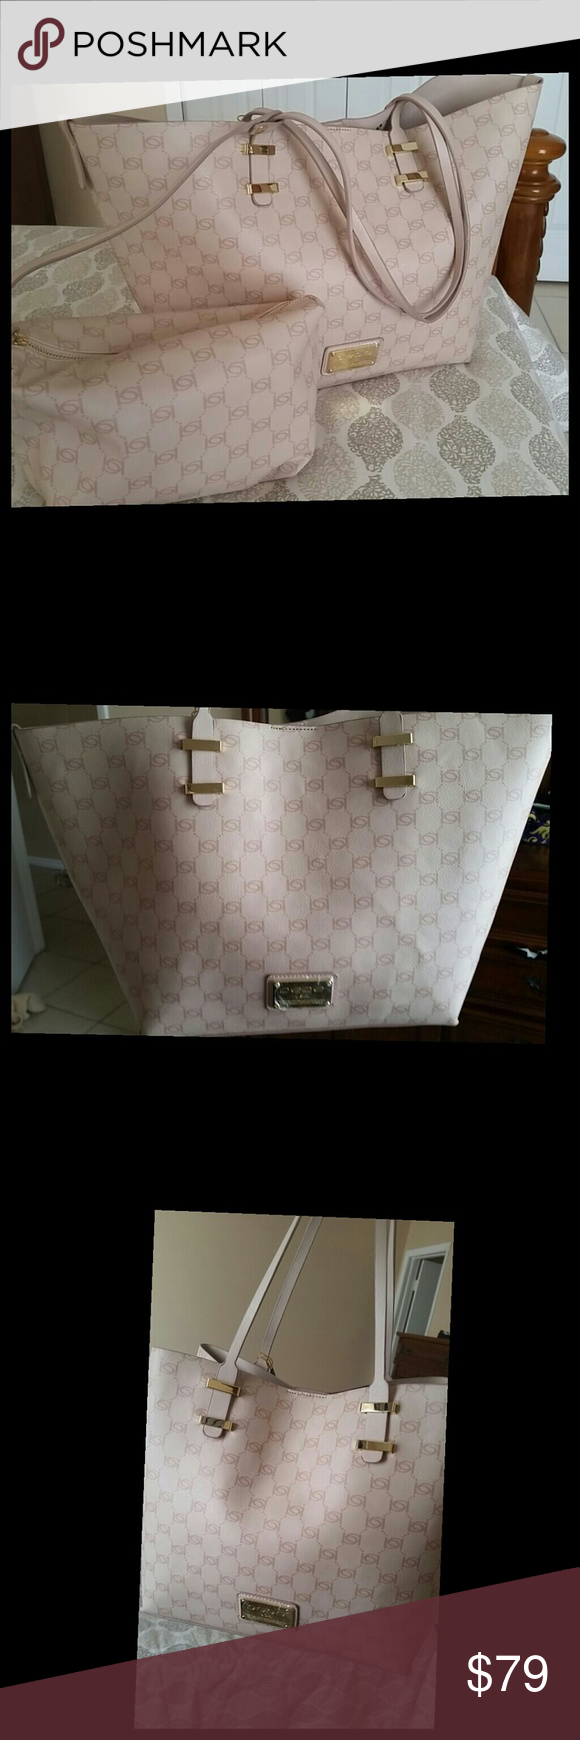 NWT Bebe Alexis Tote With Cosmetic Pouch - Blush NWT OPEN TO OFFERS AVAILABLE ON MERC bebe Bags Totes